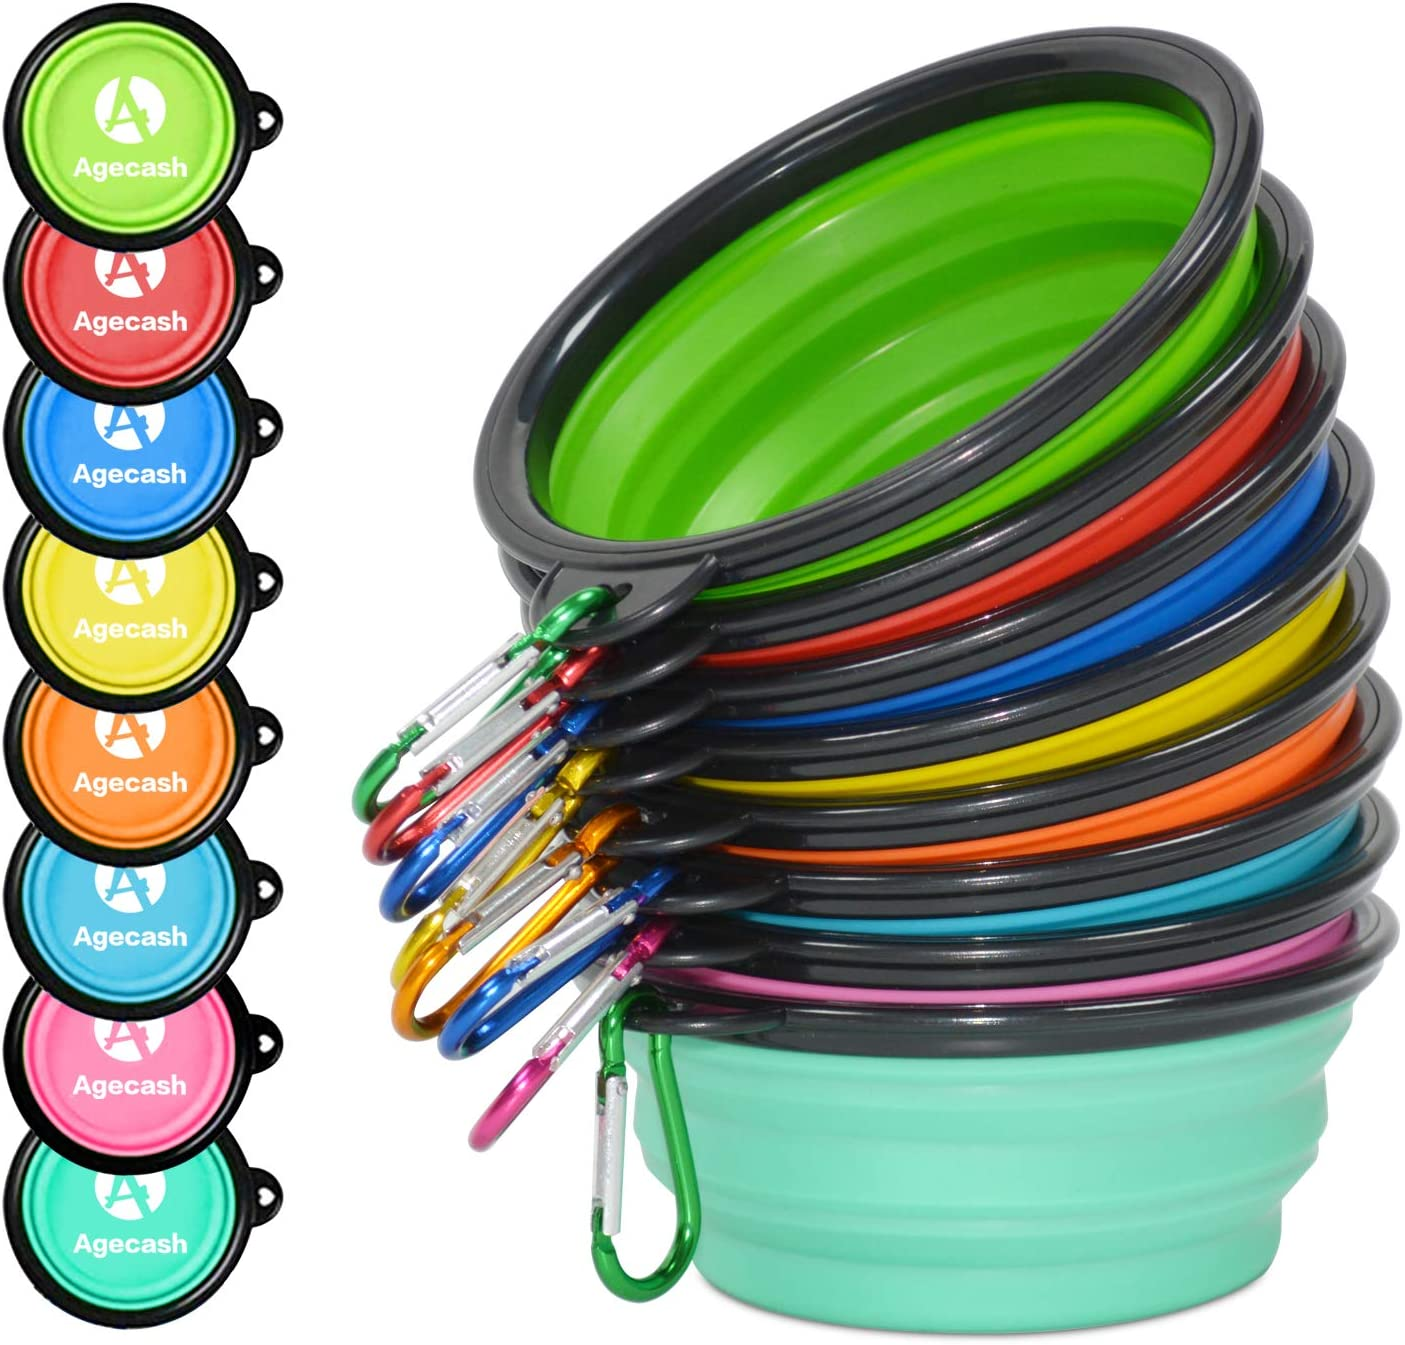 AGECASH A Collapsible Dog Bowl, 8 Pack Portable Silicone Travel Dog Cat Bowls, Pet Water Food Feeding Bowl with Carabiners for Walking Park Hiking